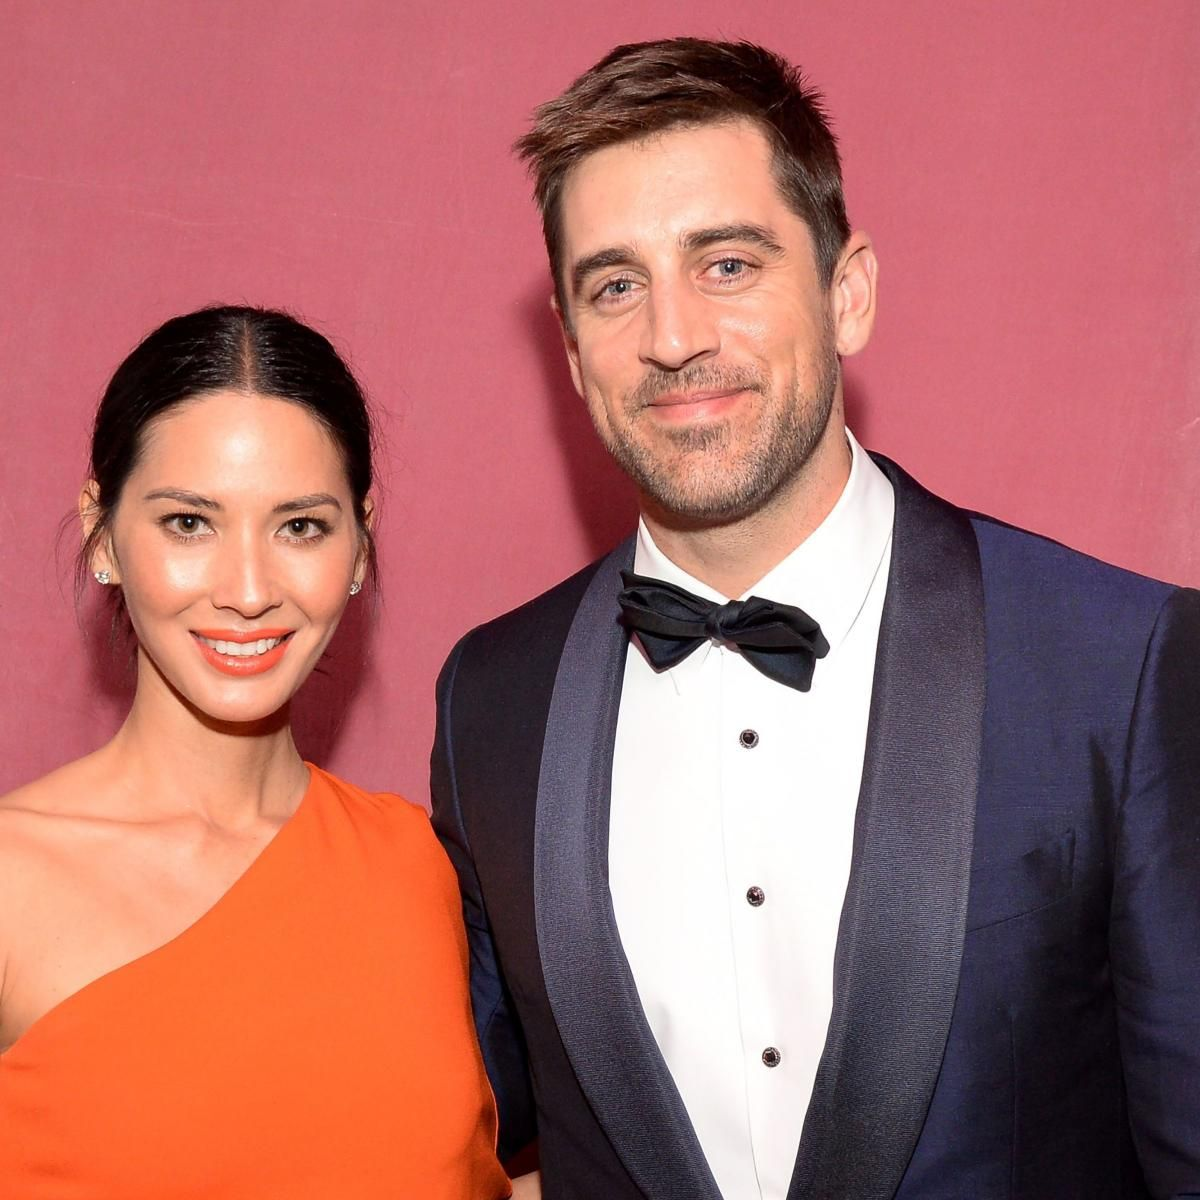 Aaron Rodgers And Olivia Munn Reportedly Break Up After 3 Year Relationship Herausforderungen